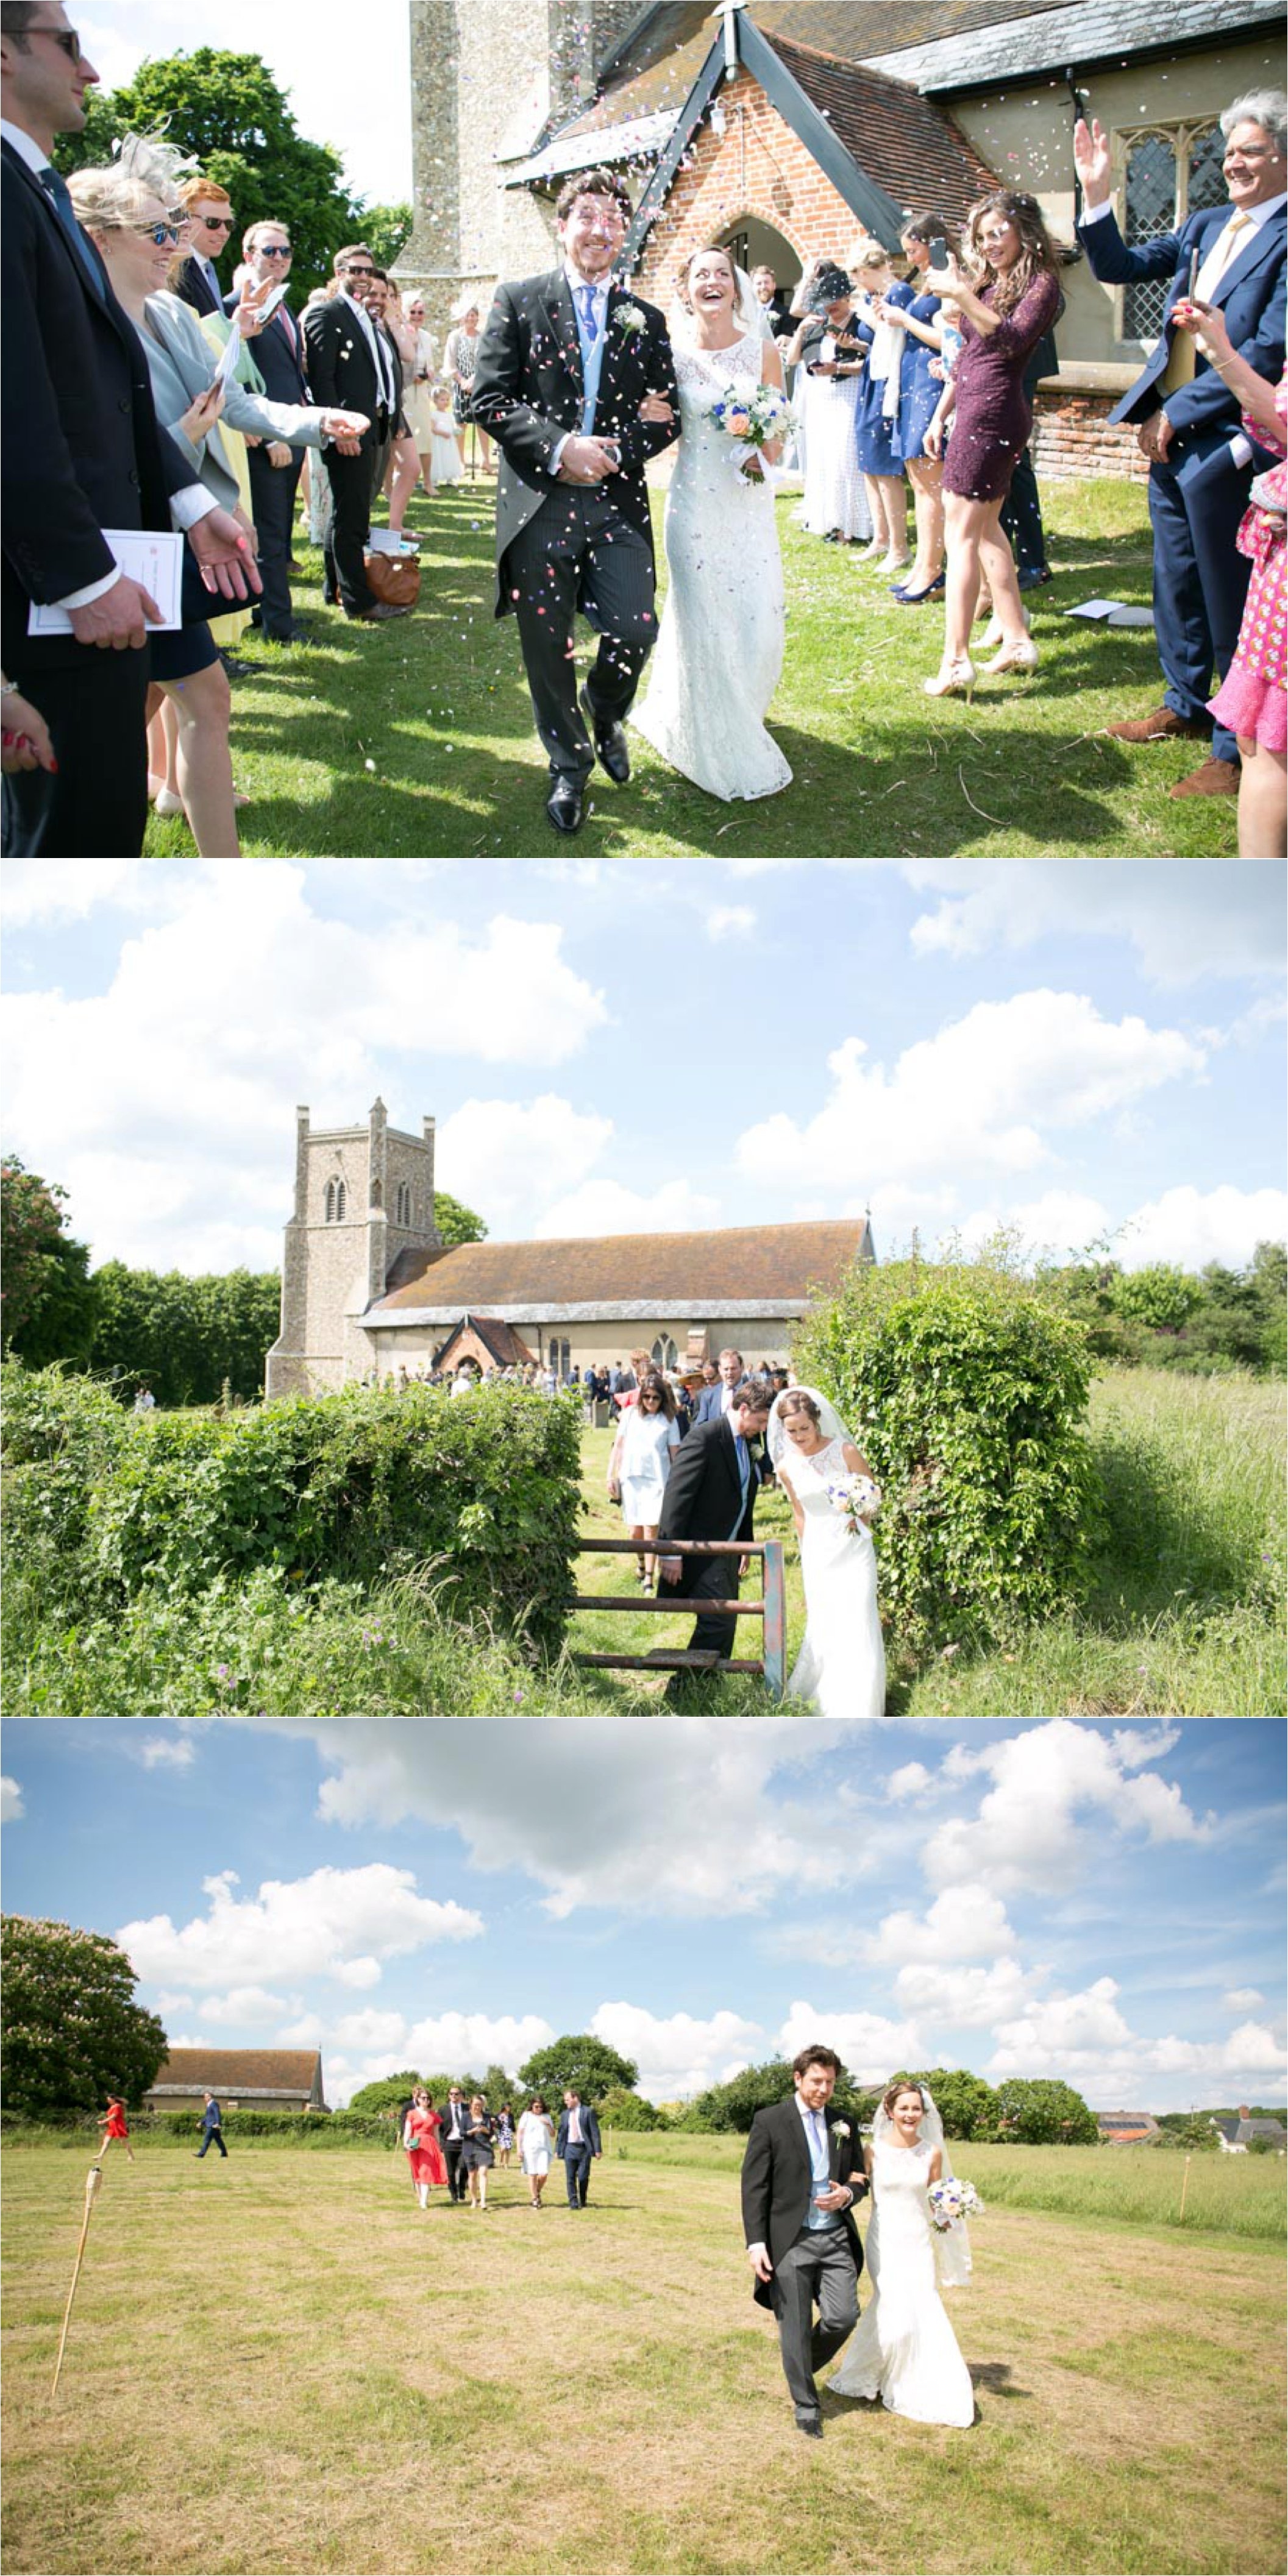 relaxed honest wedding photography, Aldeburgh suffolk. Wlaking from th church to the marquee in a field